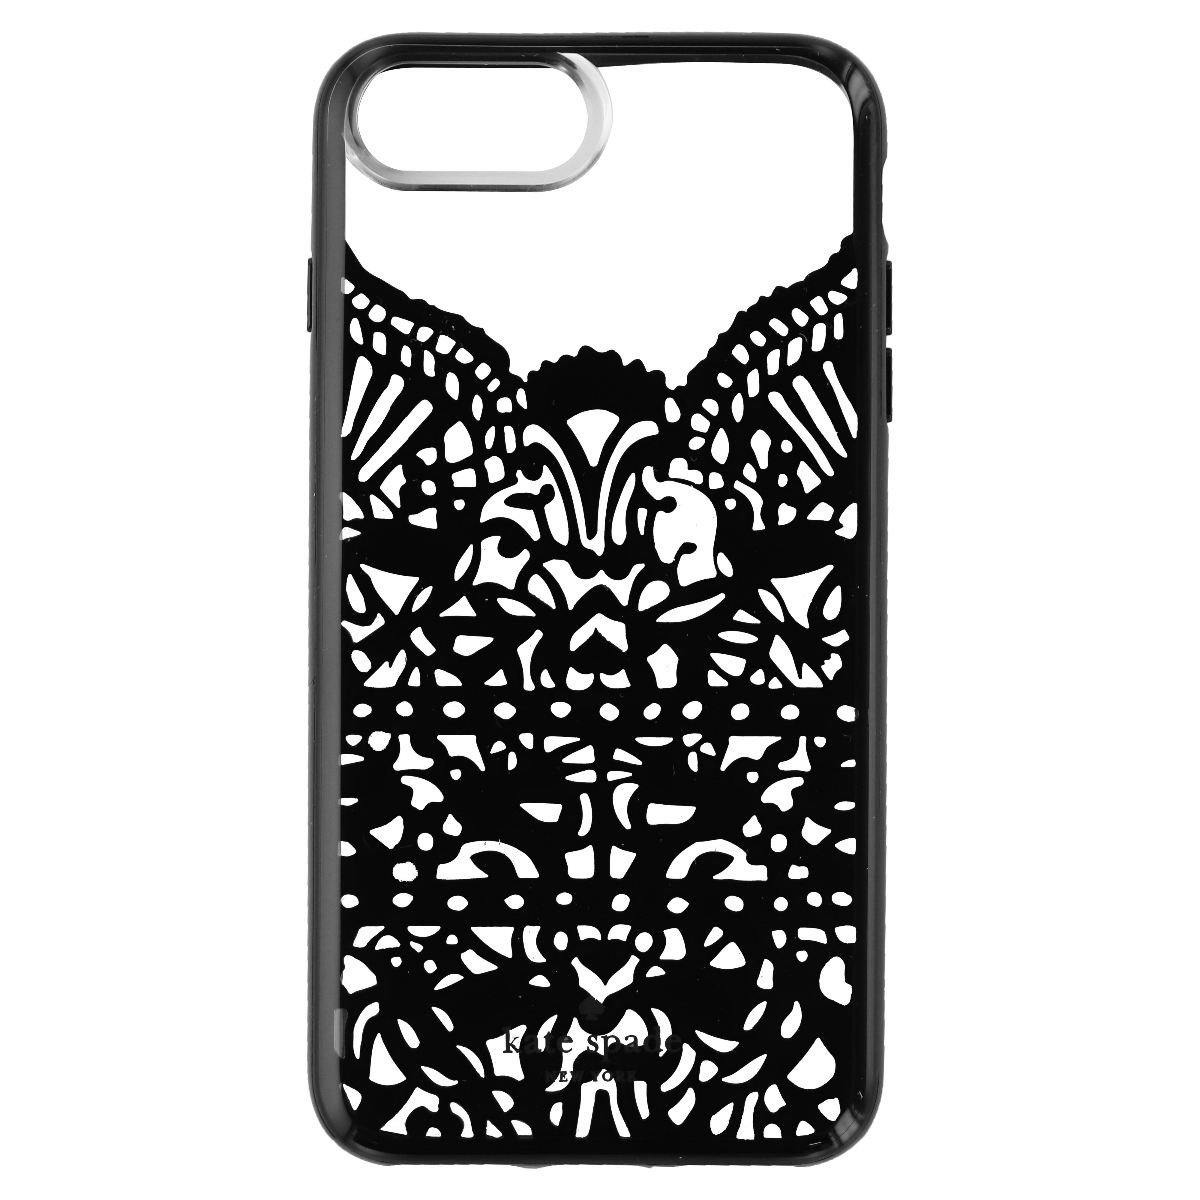 Kate Spade New York Lace Cage Protective Case Cover for iPhone 8 Plus - Black